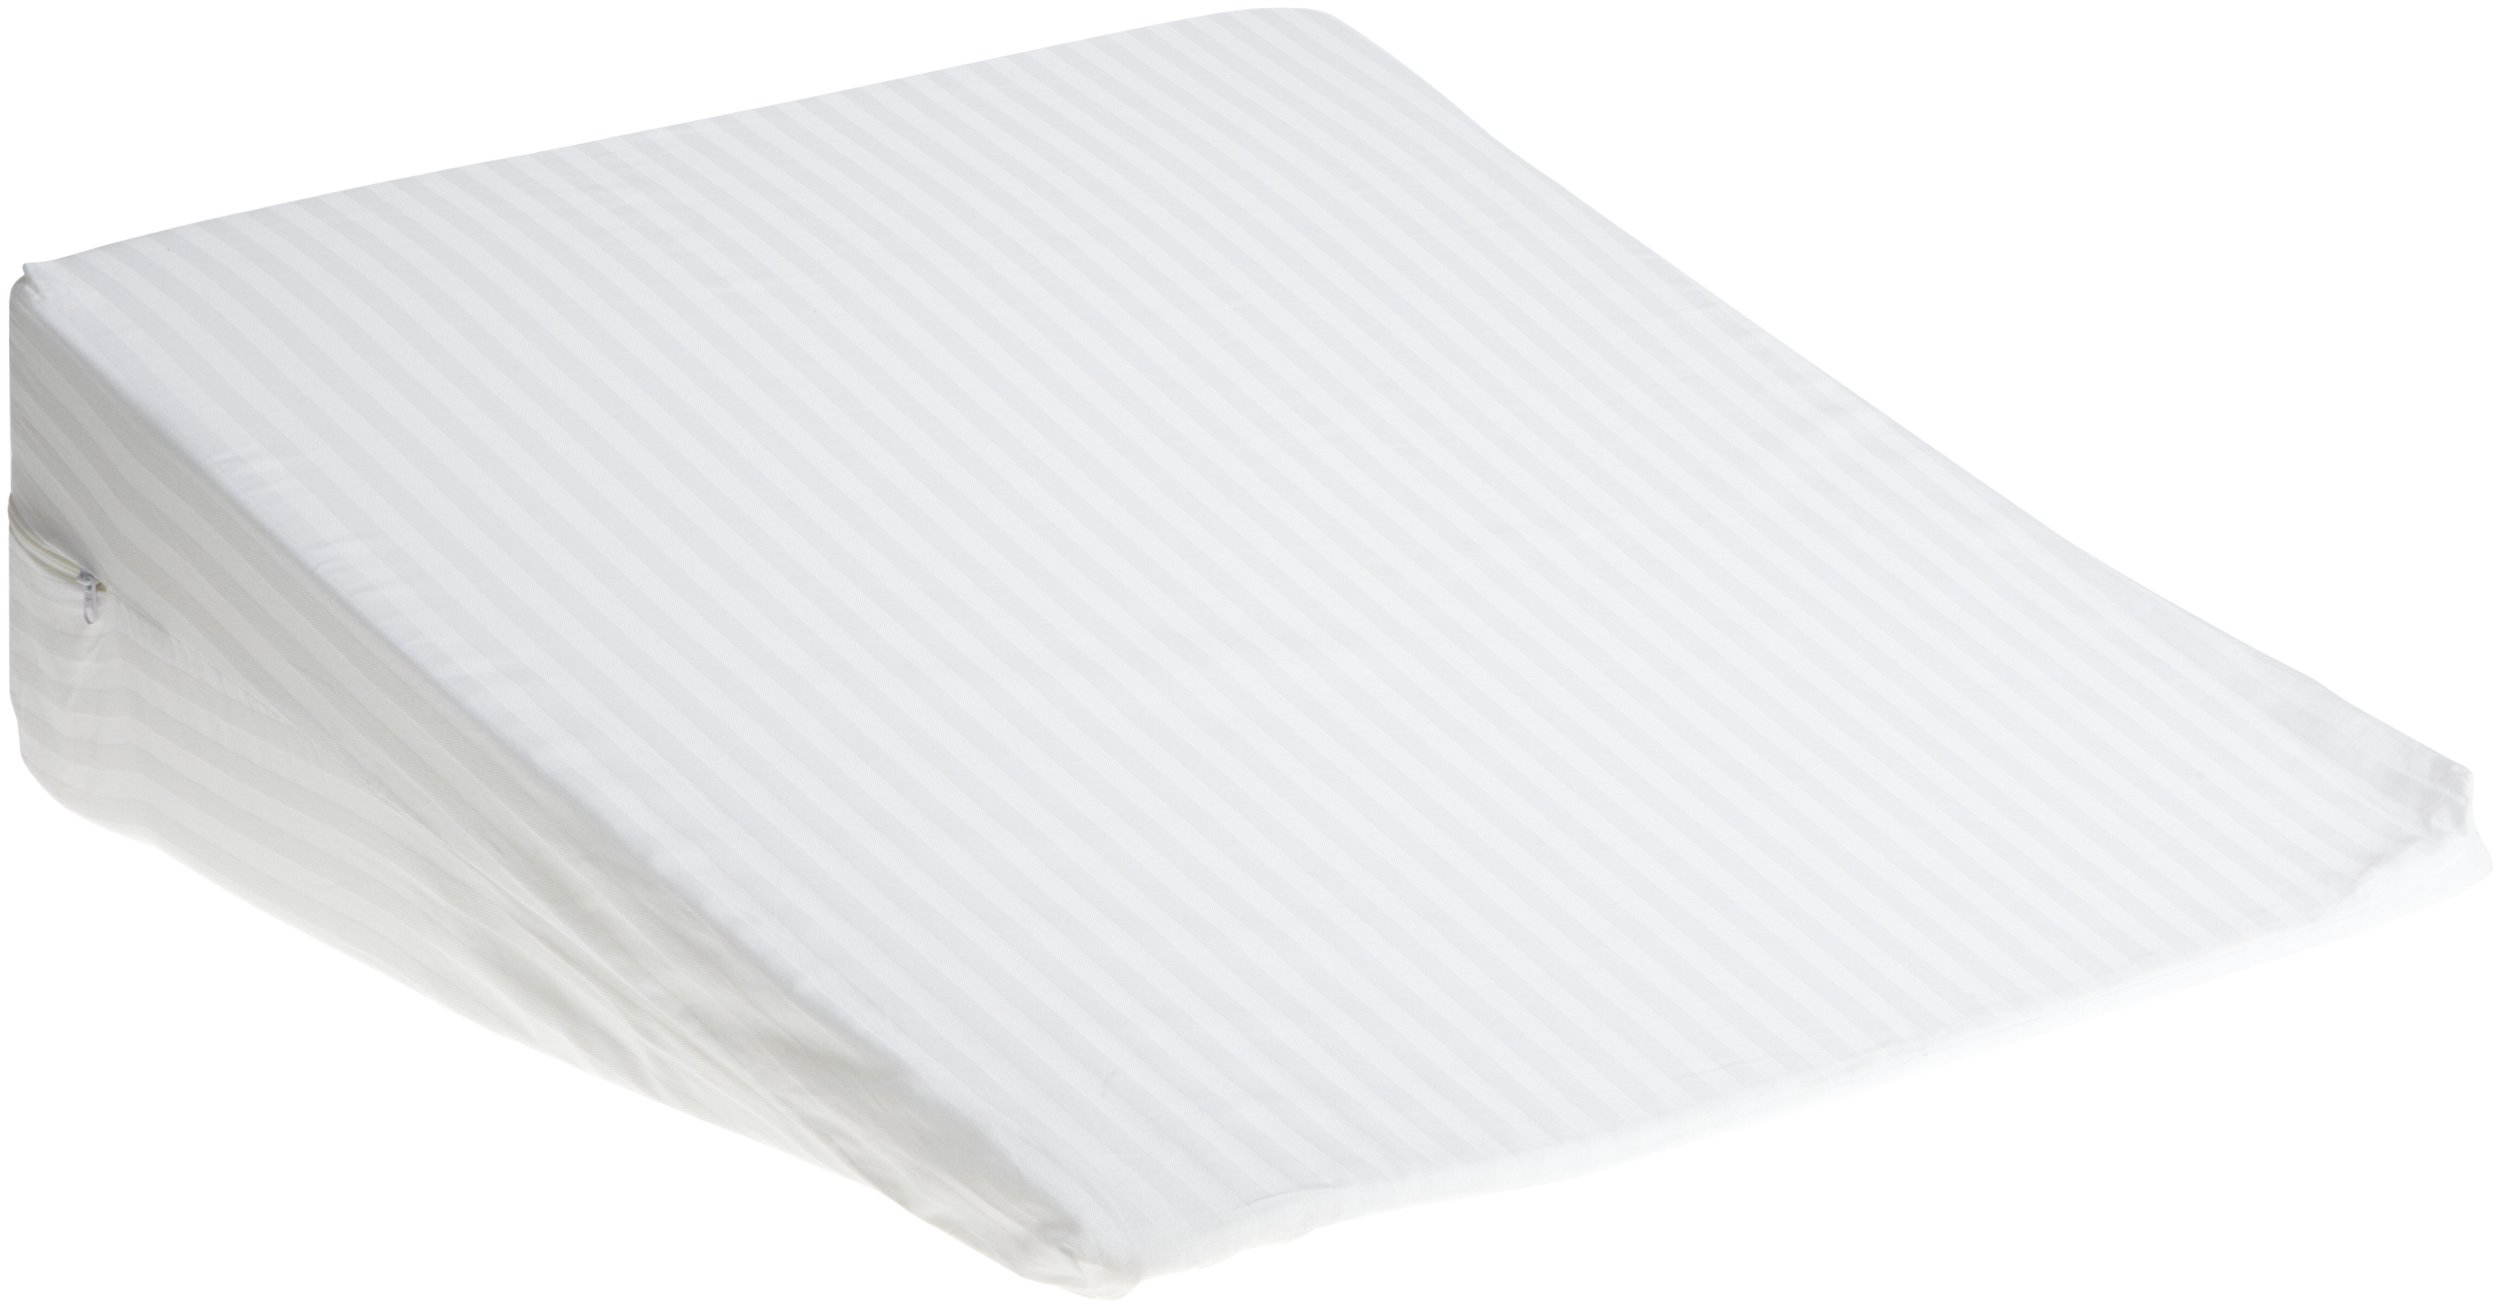 SleepBetter Conventional Foam Bed Wedge Pillow